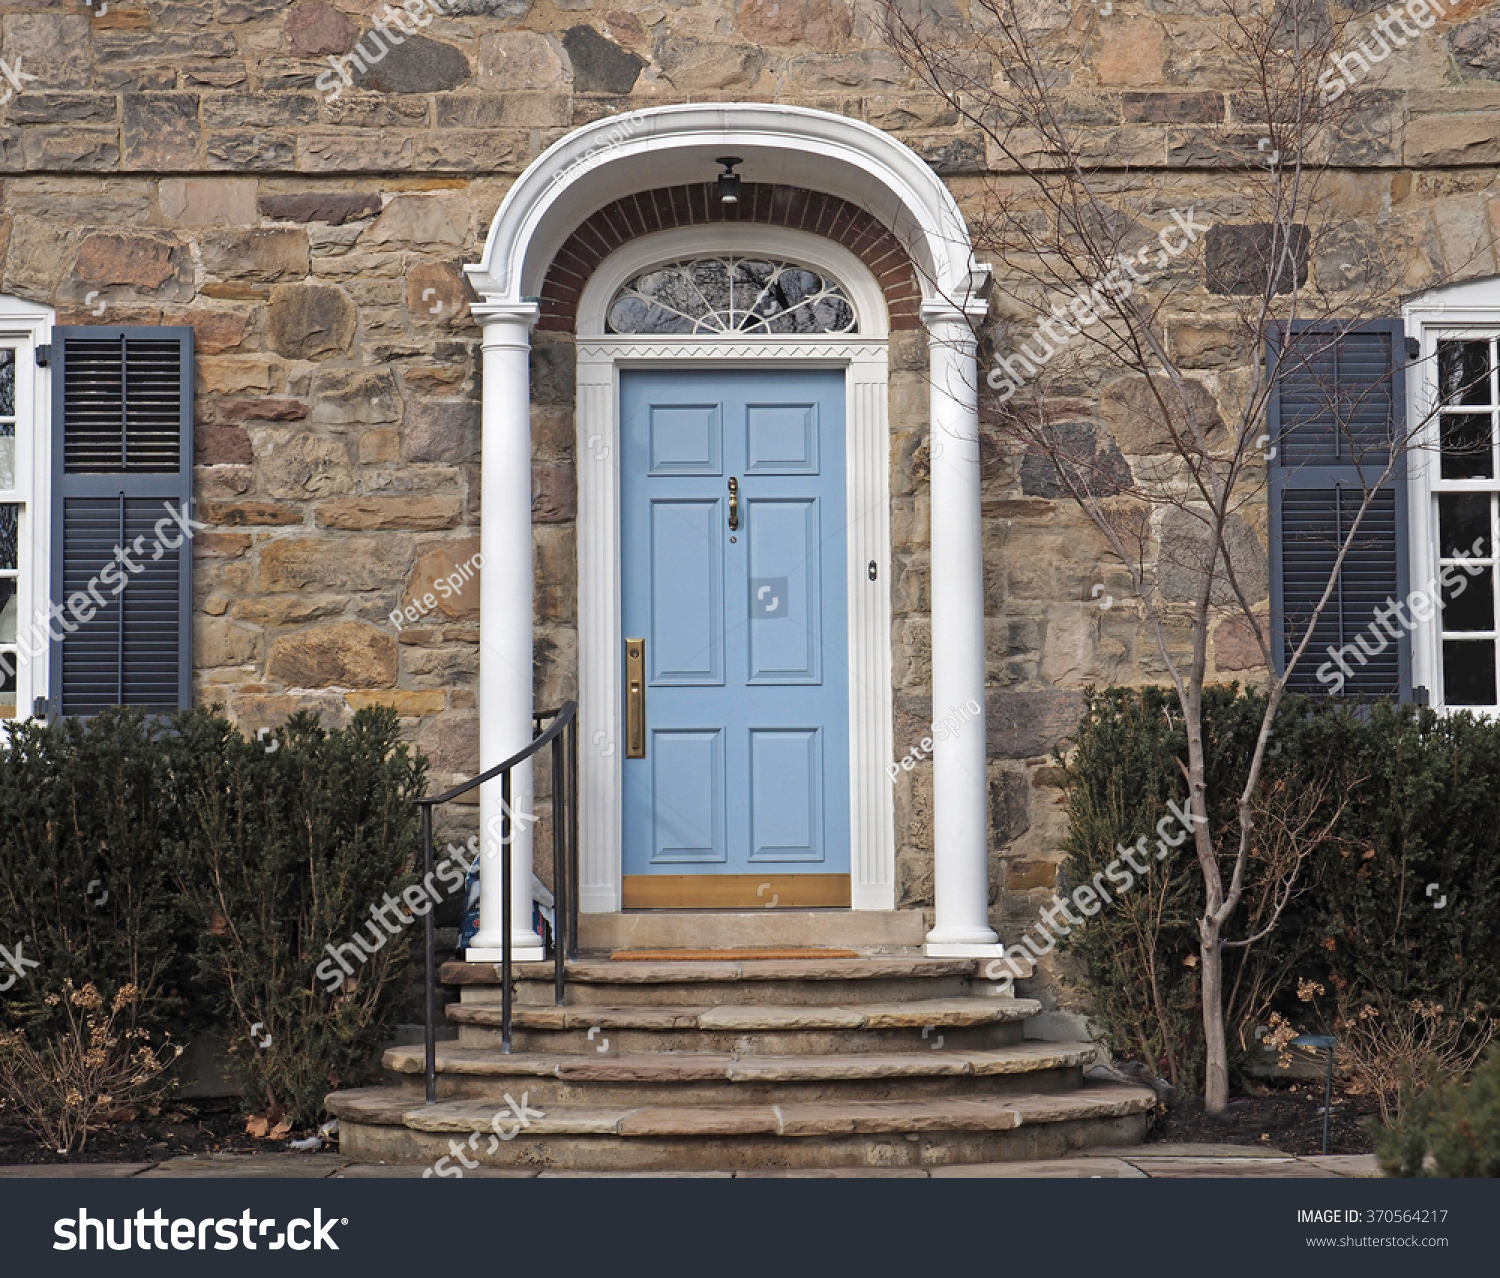 Stone faced house with portico around front door stock for Stone faced houses